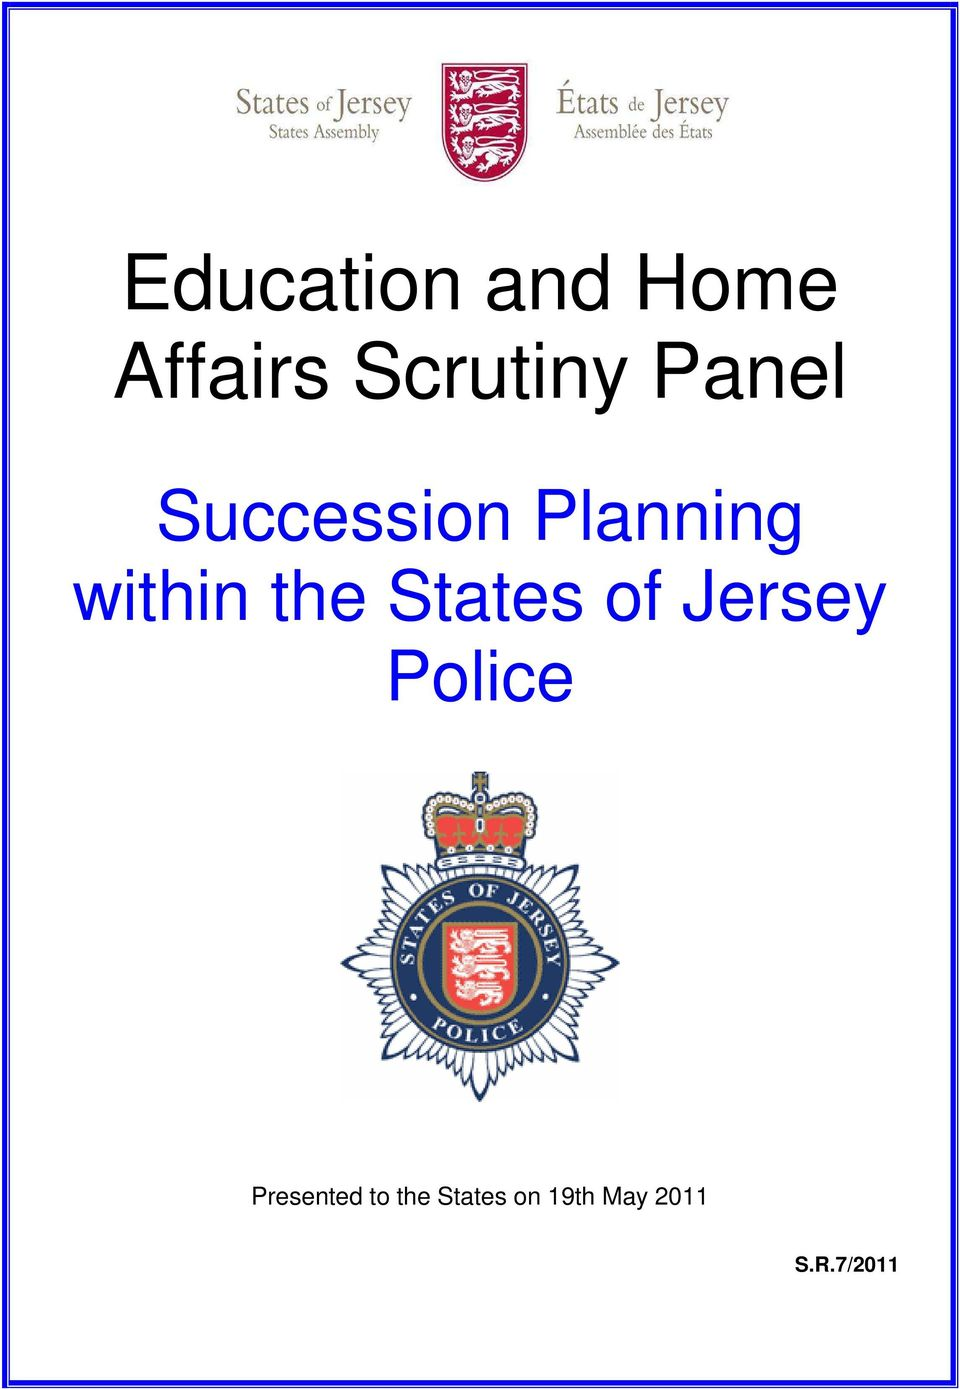 States of Jersey Police Presented to